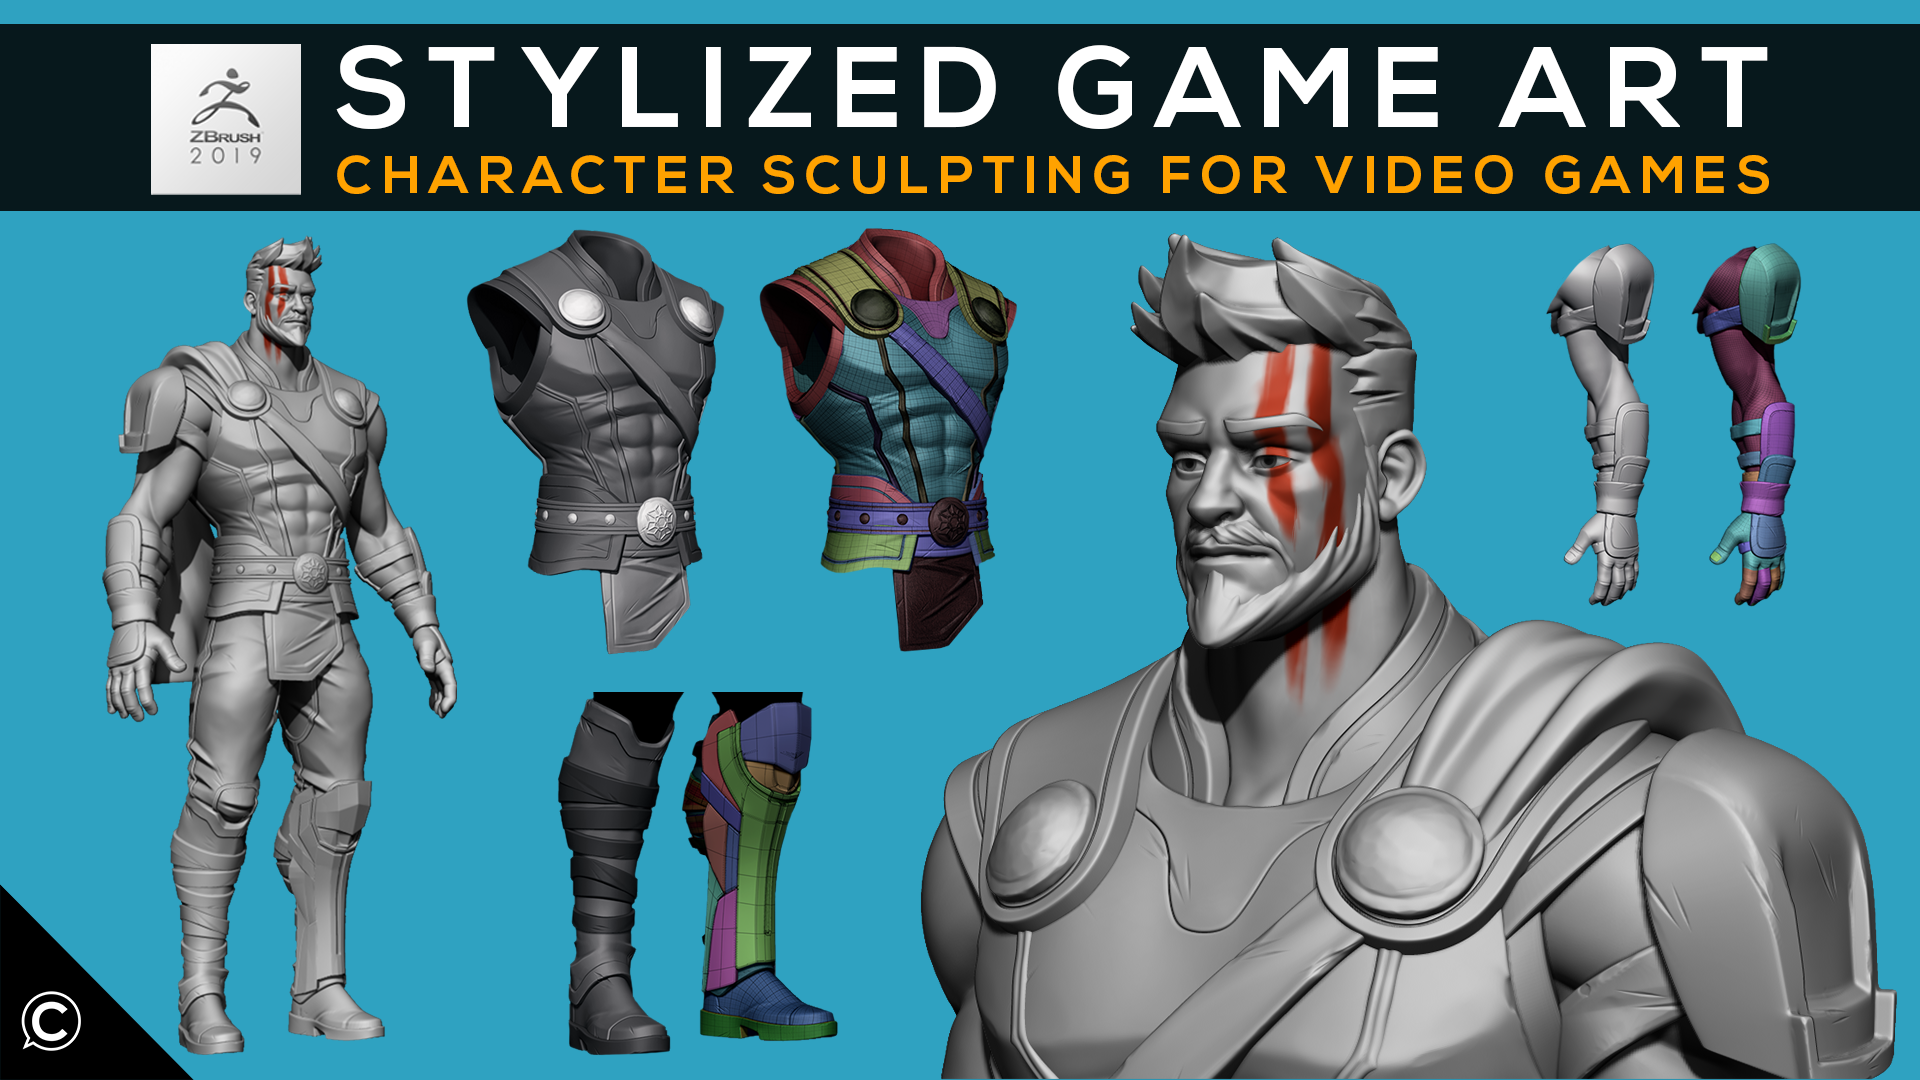 Stylized Game Art: Character Sculpting for Video Games